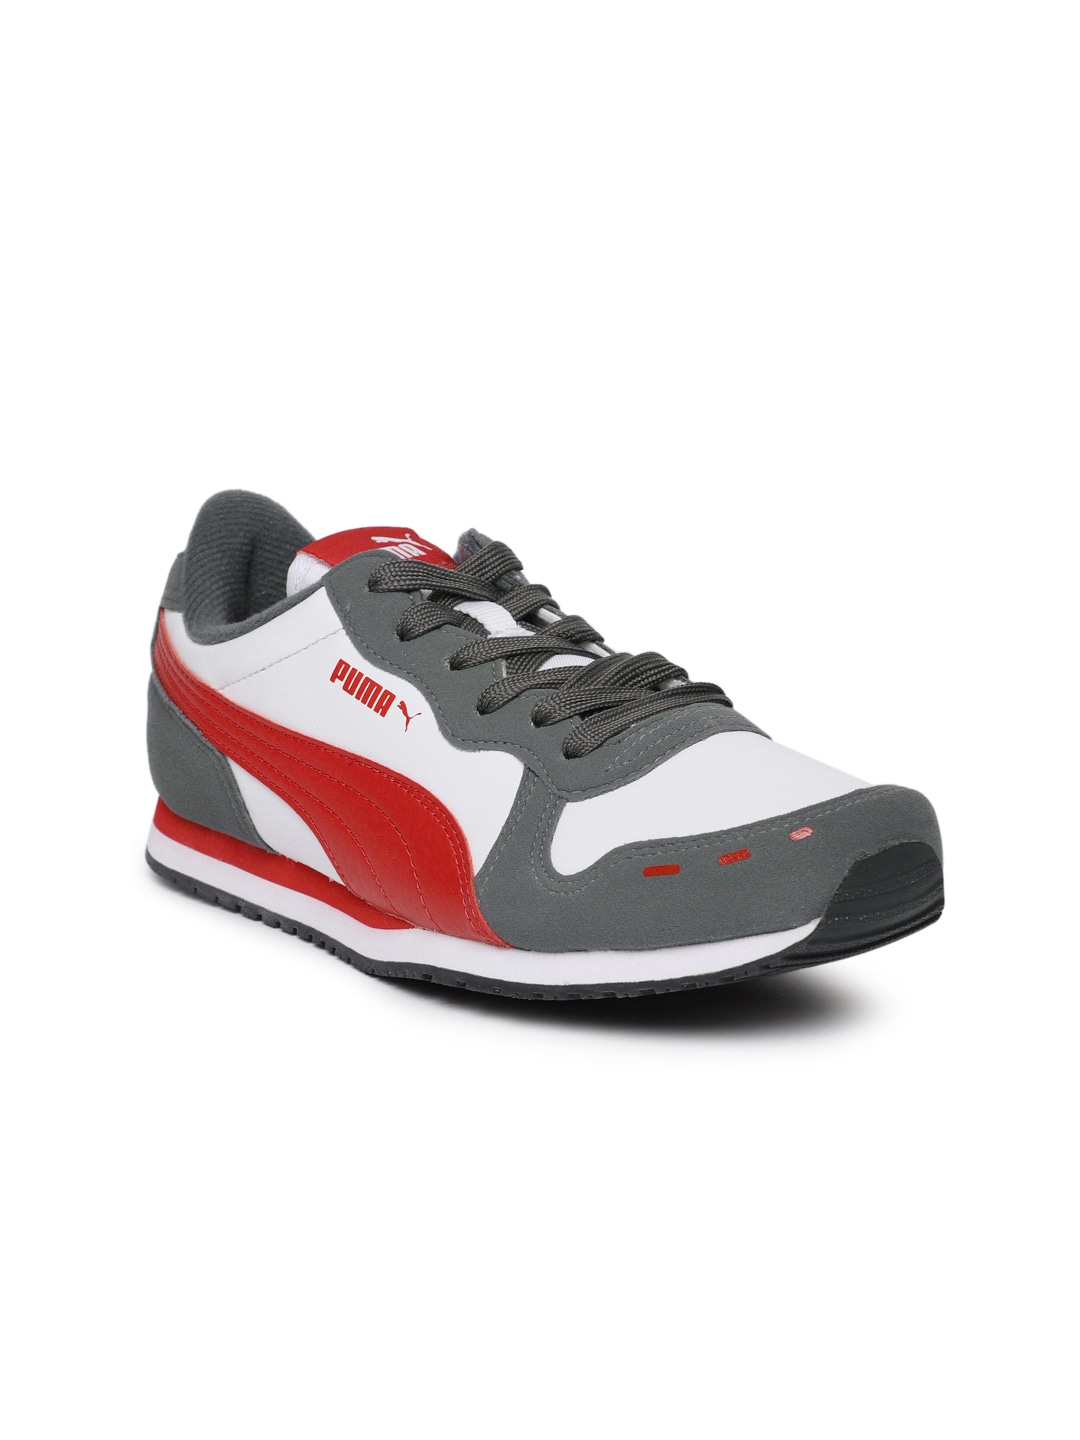 91ac9a812a29 Sl Casual Shoes - Buy Sl Casual Shoes online in India